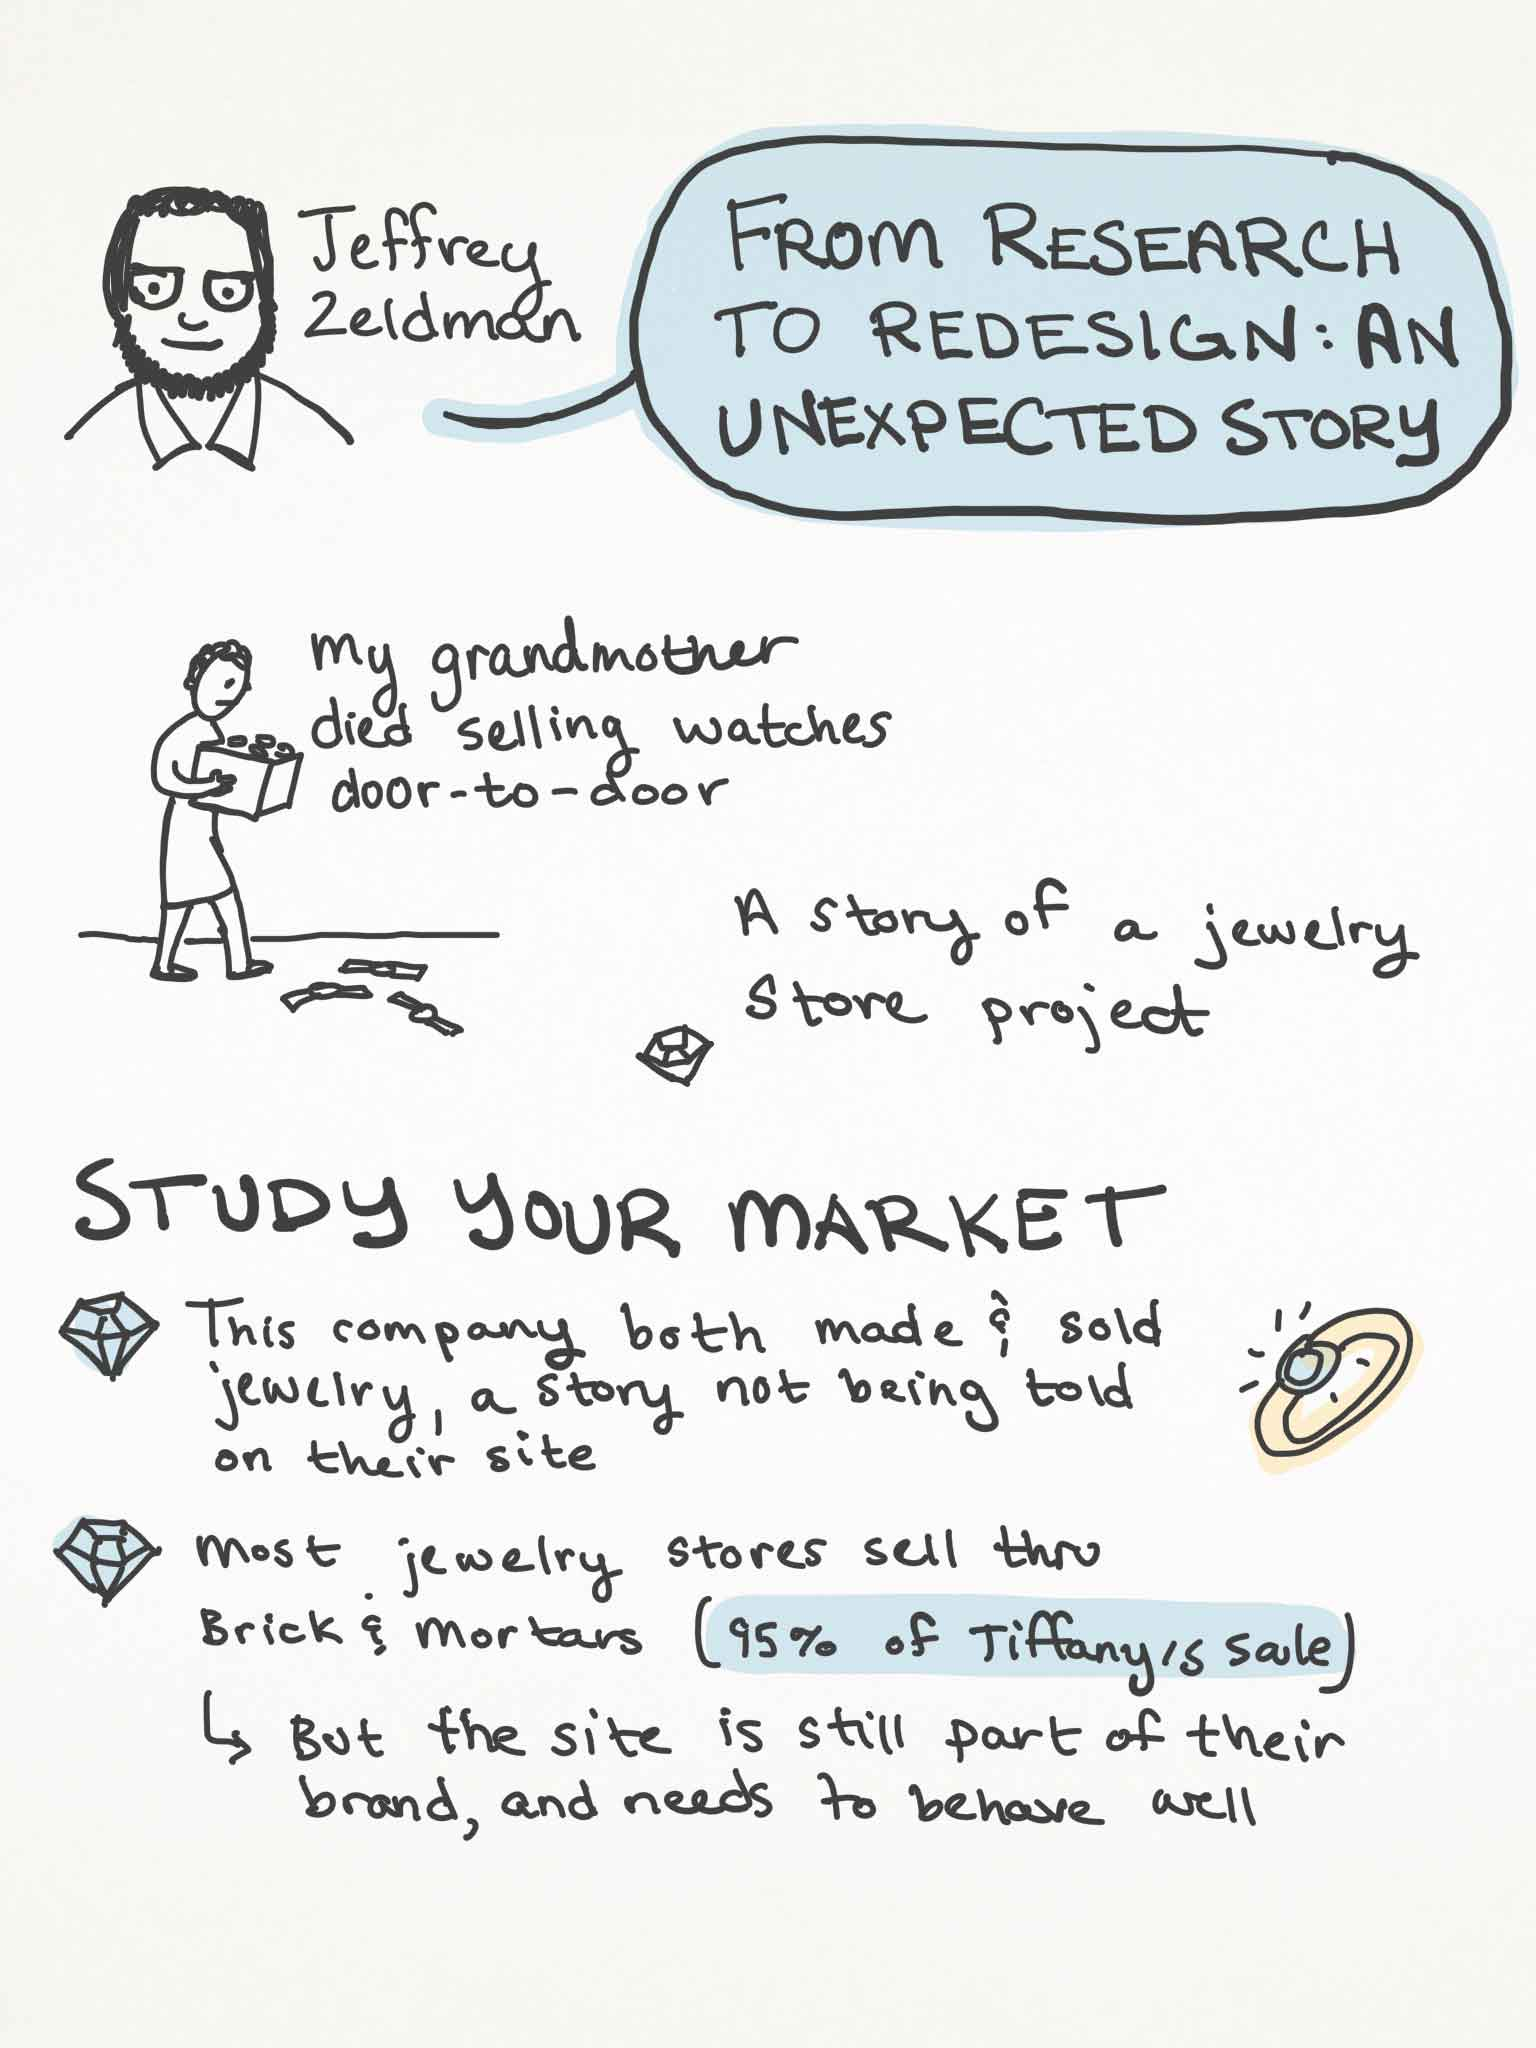 Sketchnotes page 1 of Jeffrey Zeldman's talk